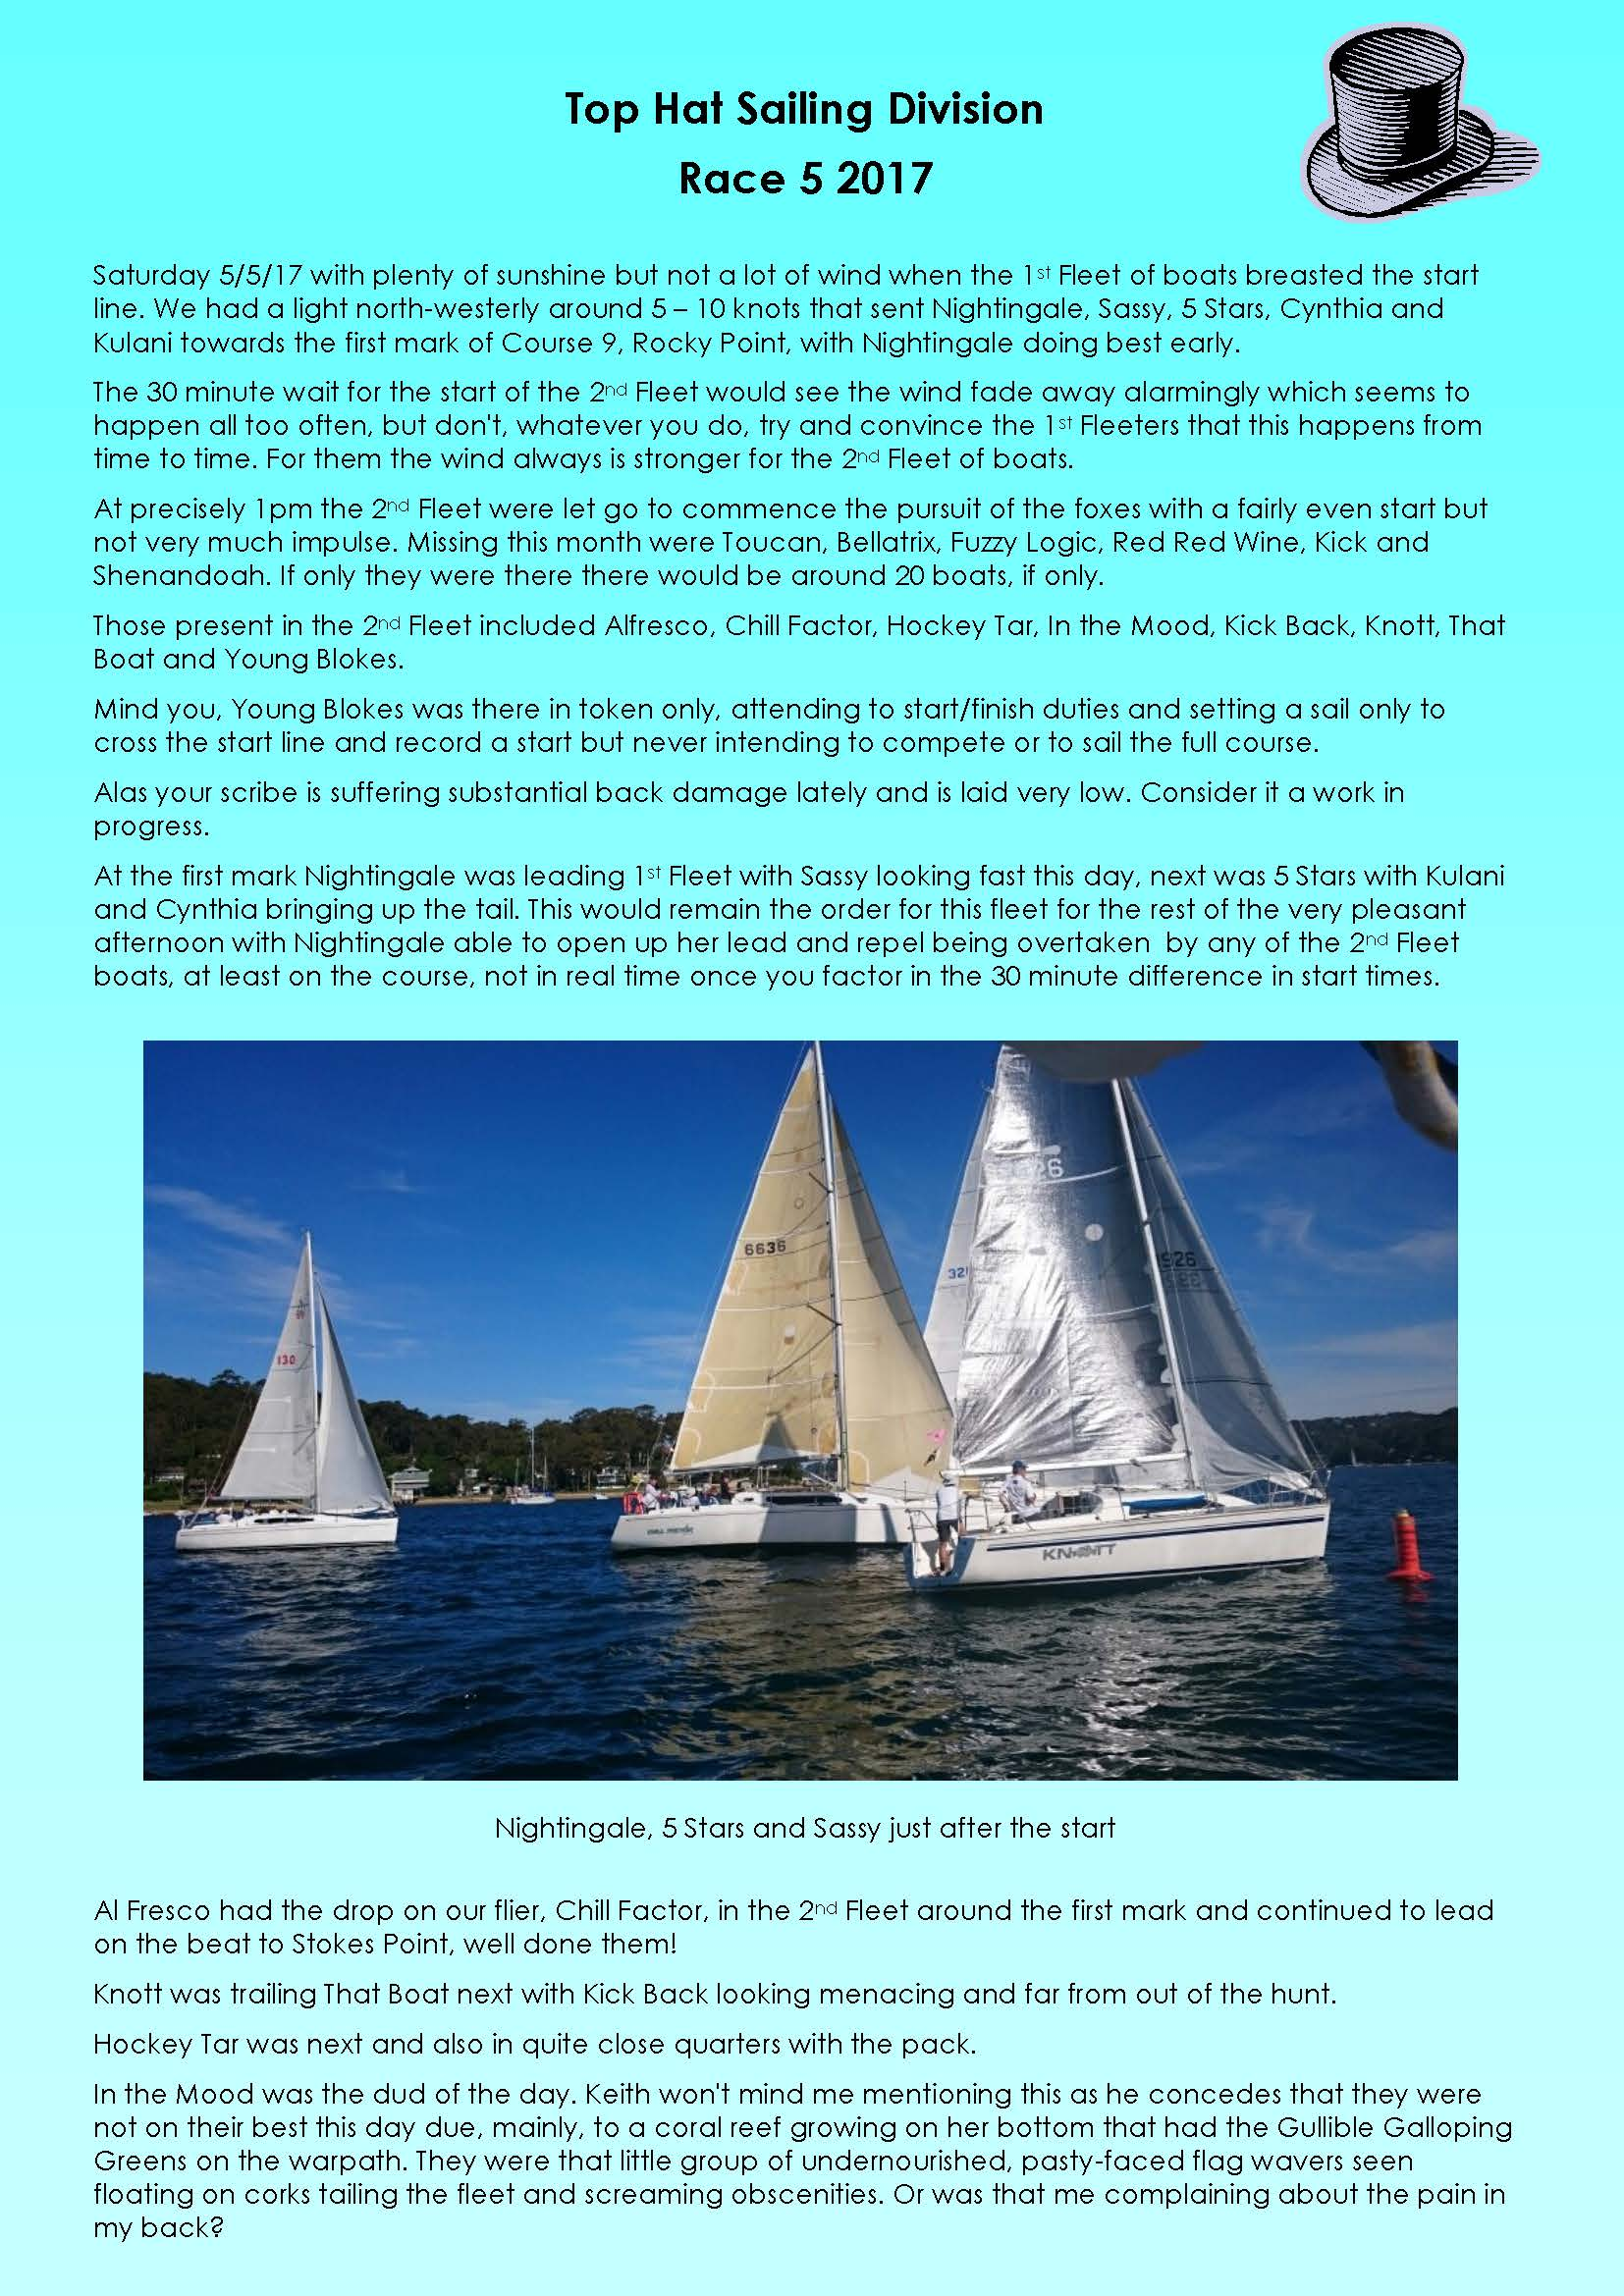 Top Hat Sailing Race 5 060517 Page 1